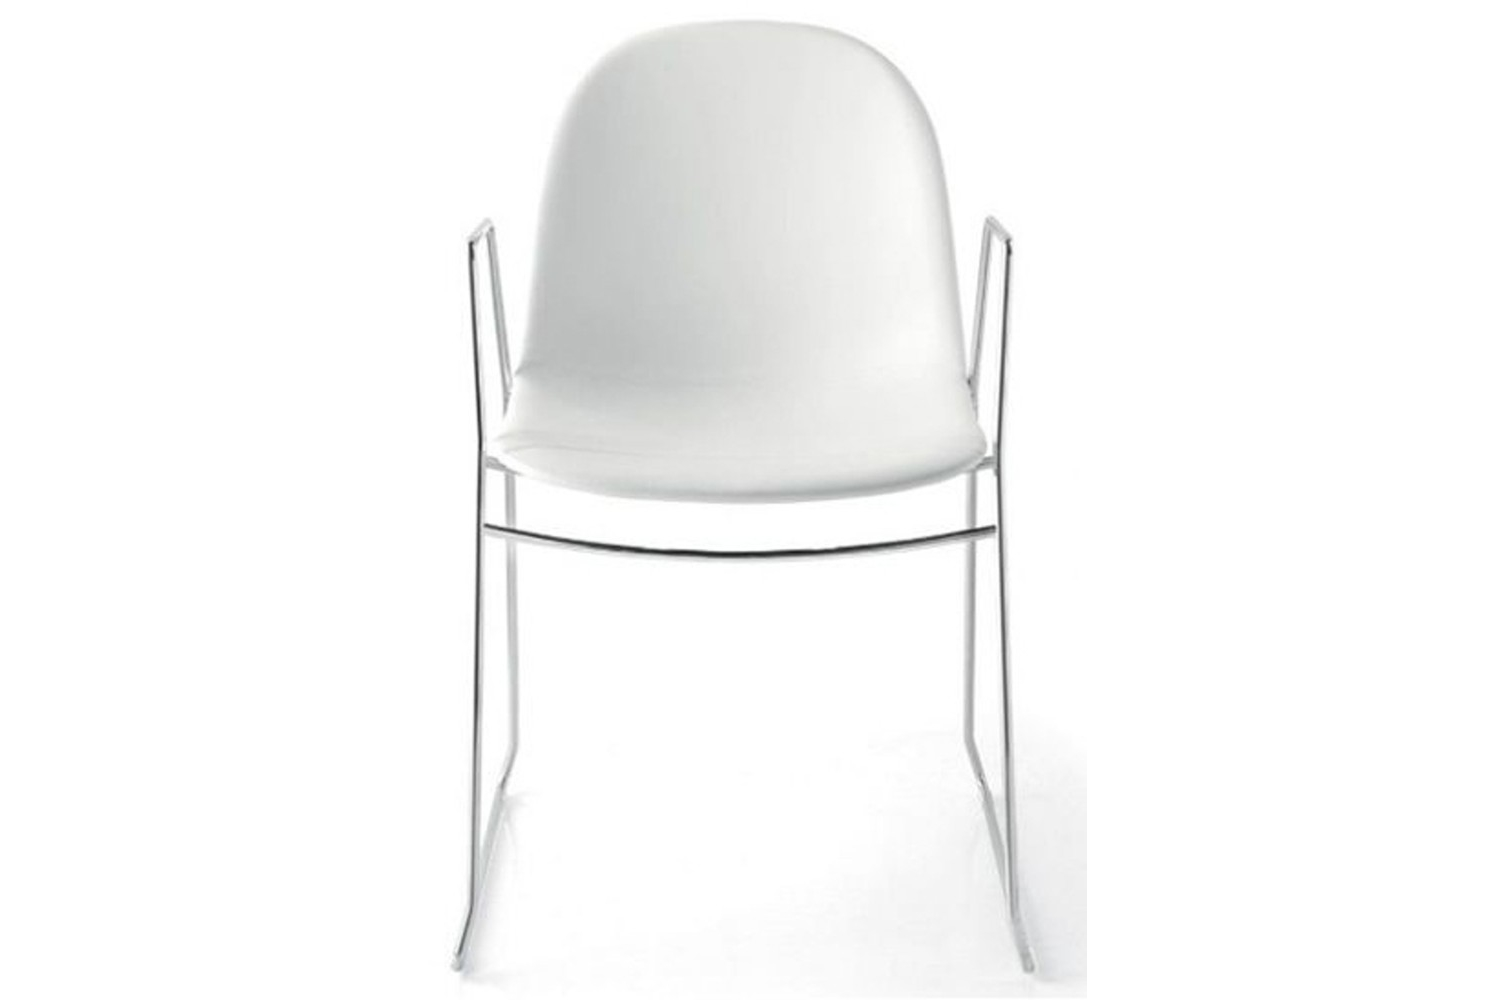 calligaris contract academy 1697 chair 84 1528876761412 5691 calligaris-contract-academy-1697-chair-84-1528876761412-5691.jpg Academy metal armchair